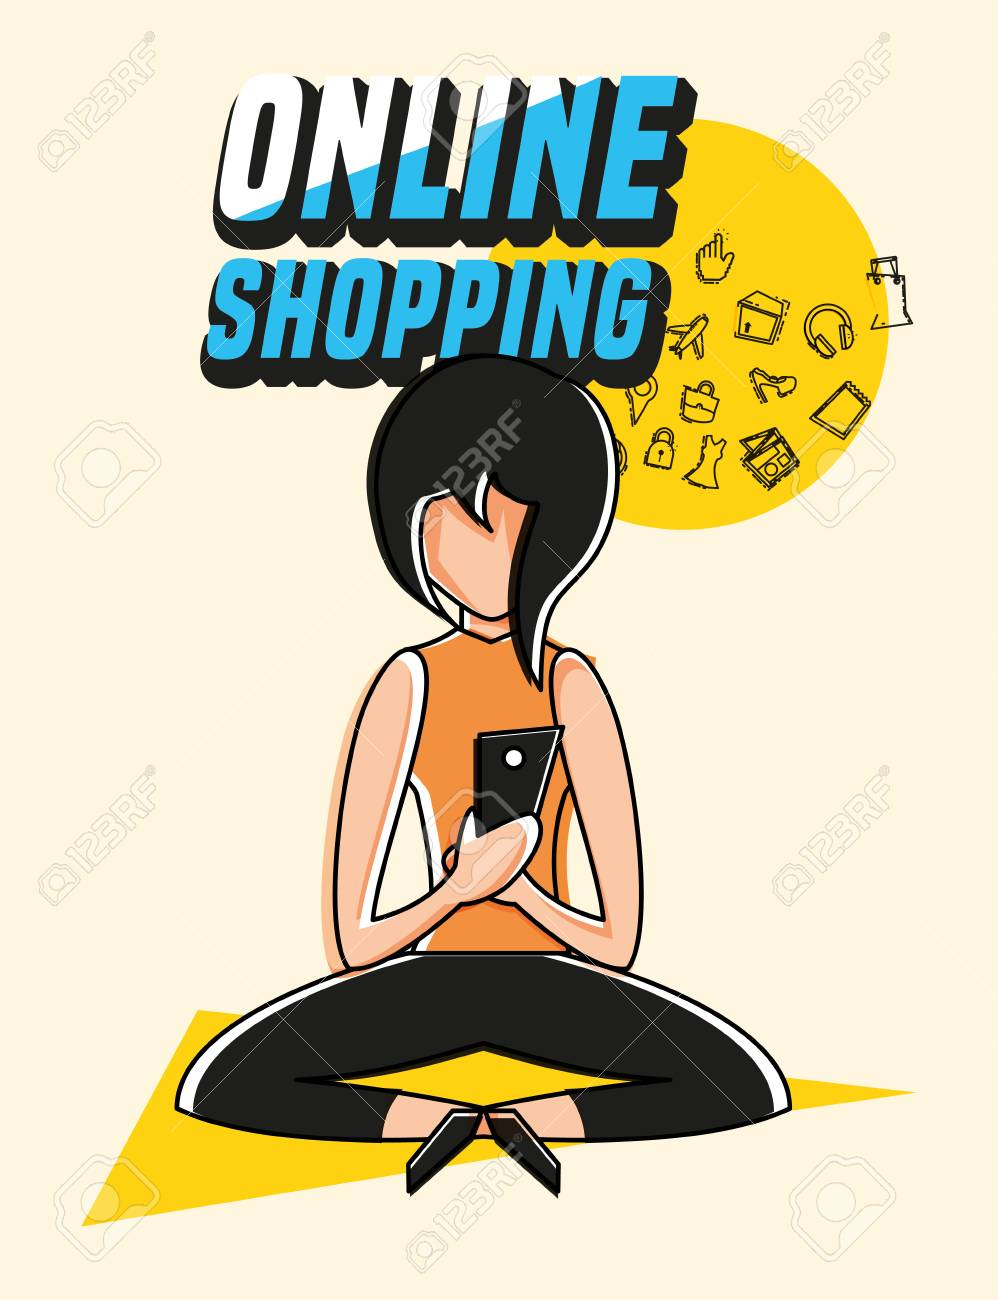 Woman Avatar With Online Shopping Icon Pop Art Style Vector Illustration Royalty Free Cliparts Vectors And Stock Illustration Image 102848693